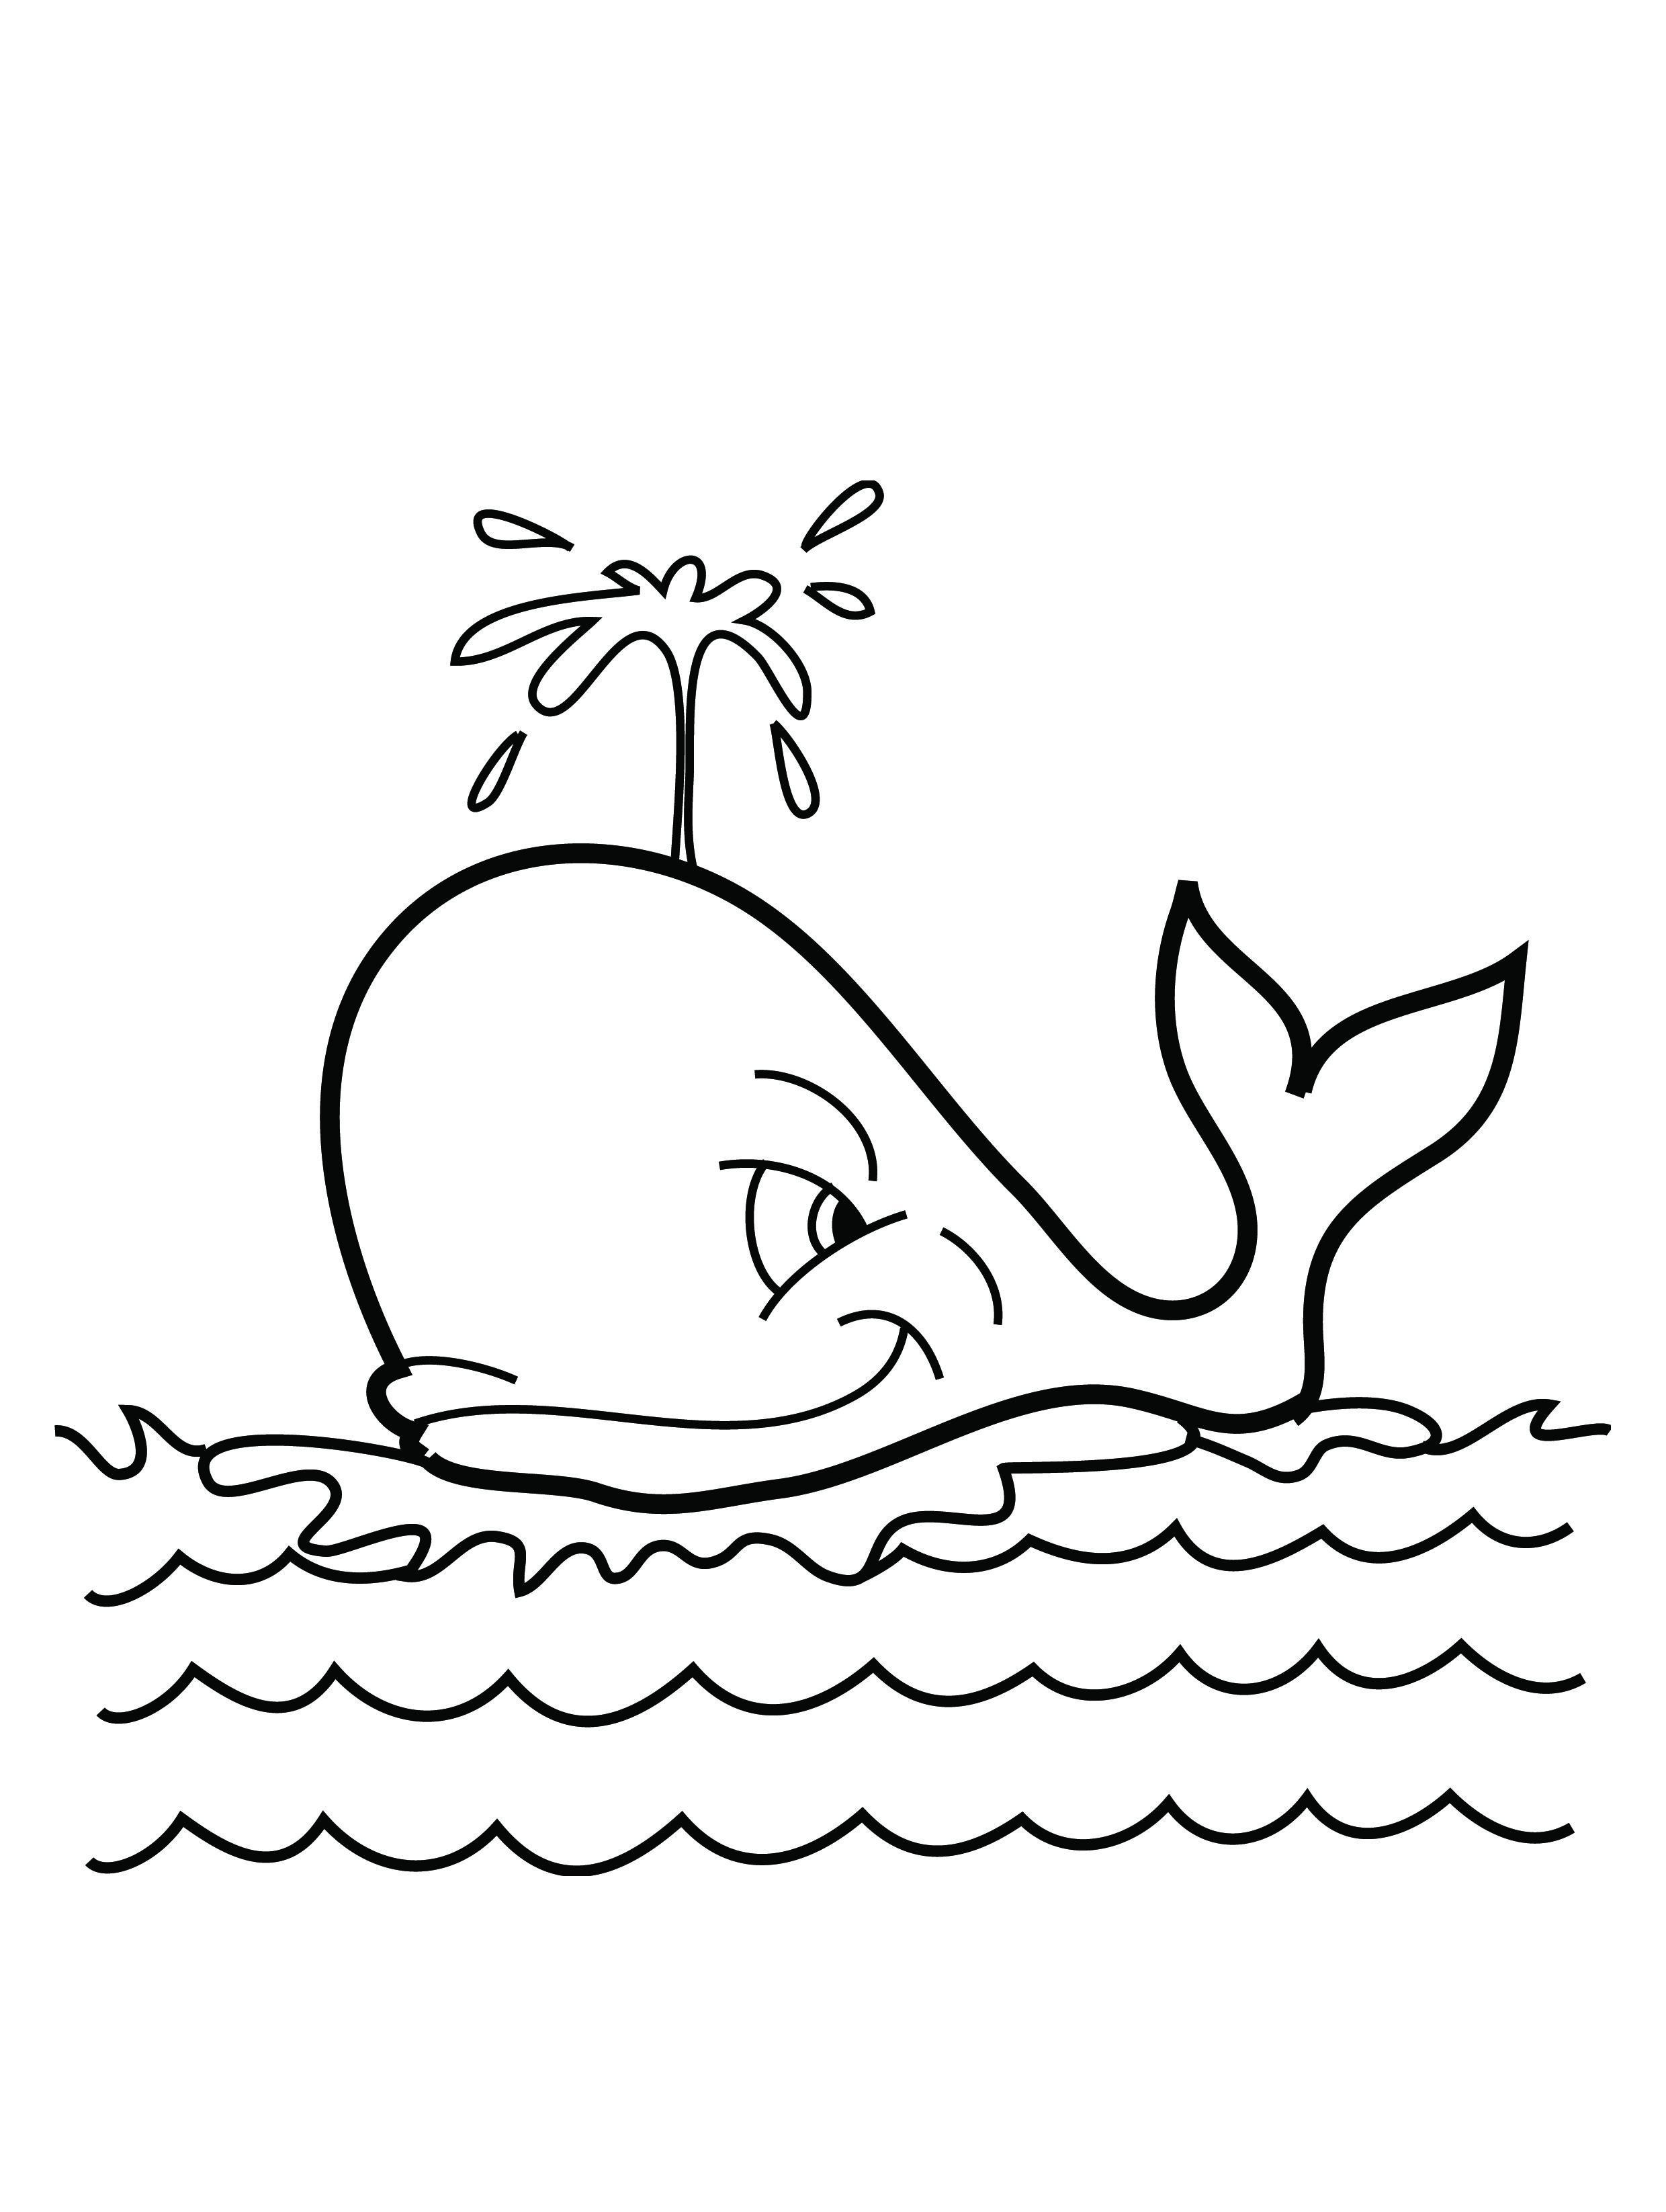 printable whale coloring pages whale coloring pages coloring printable whale pages